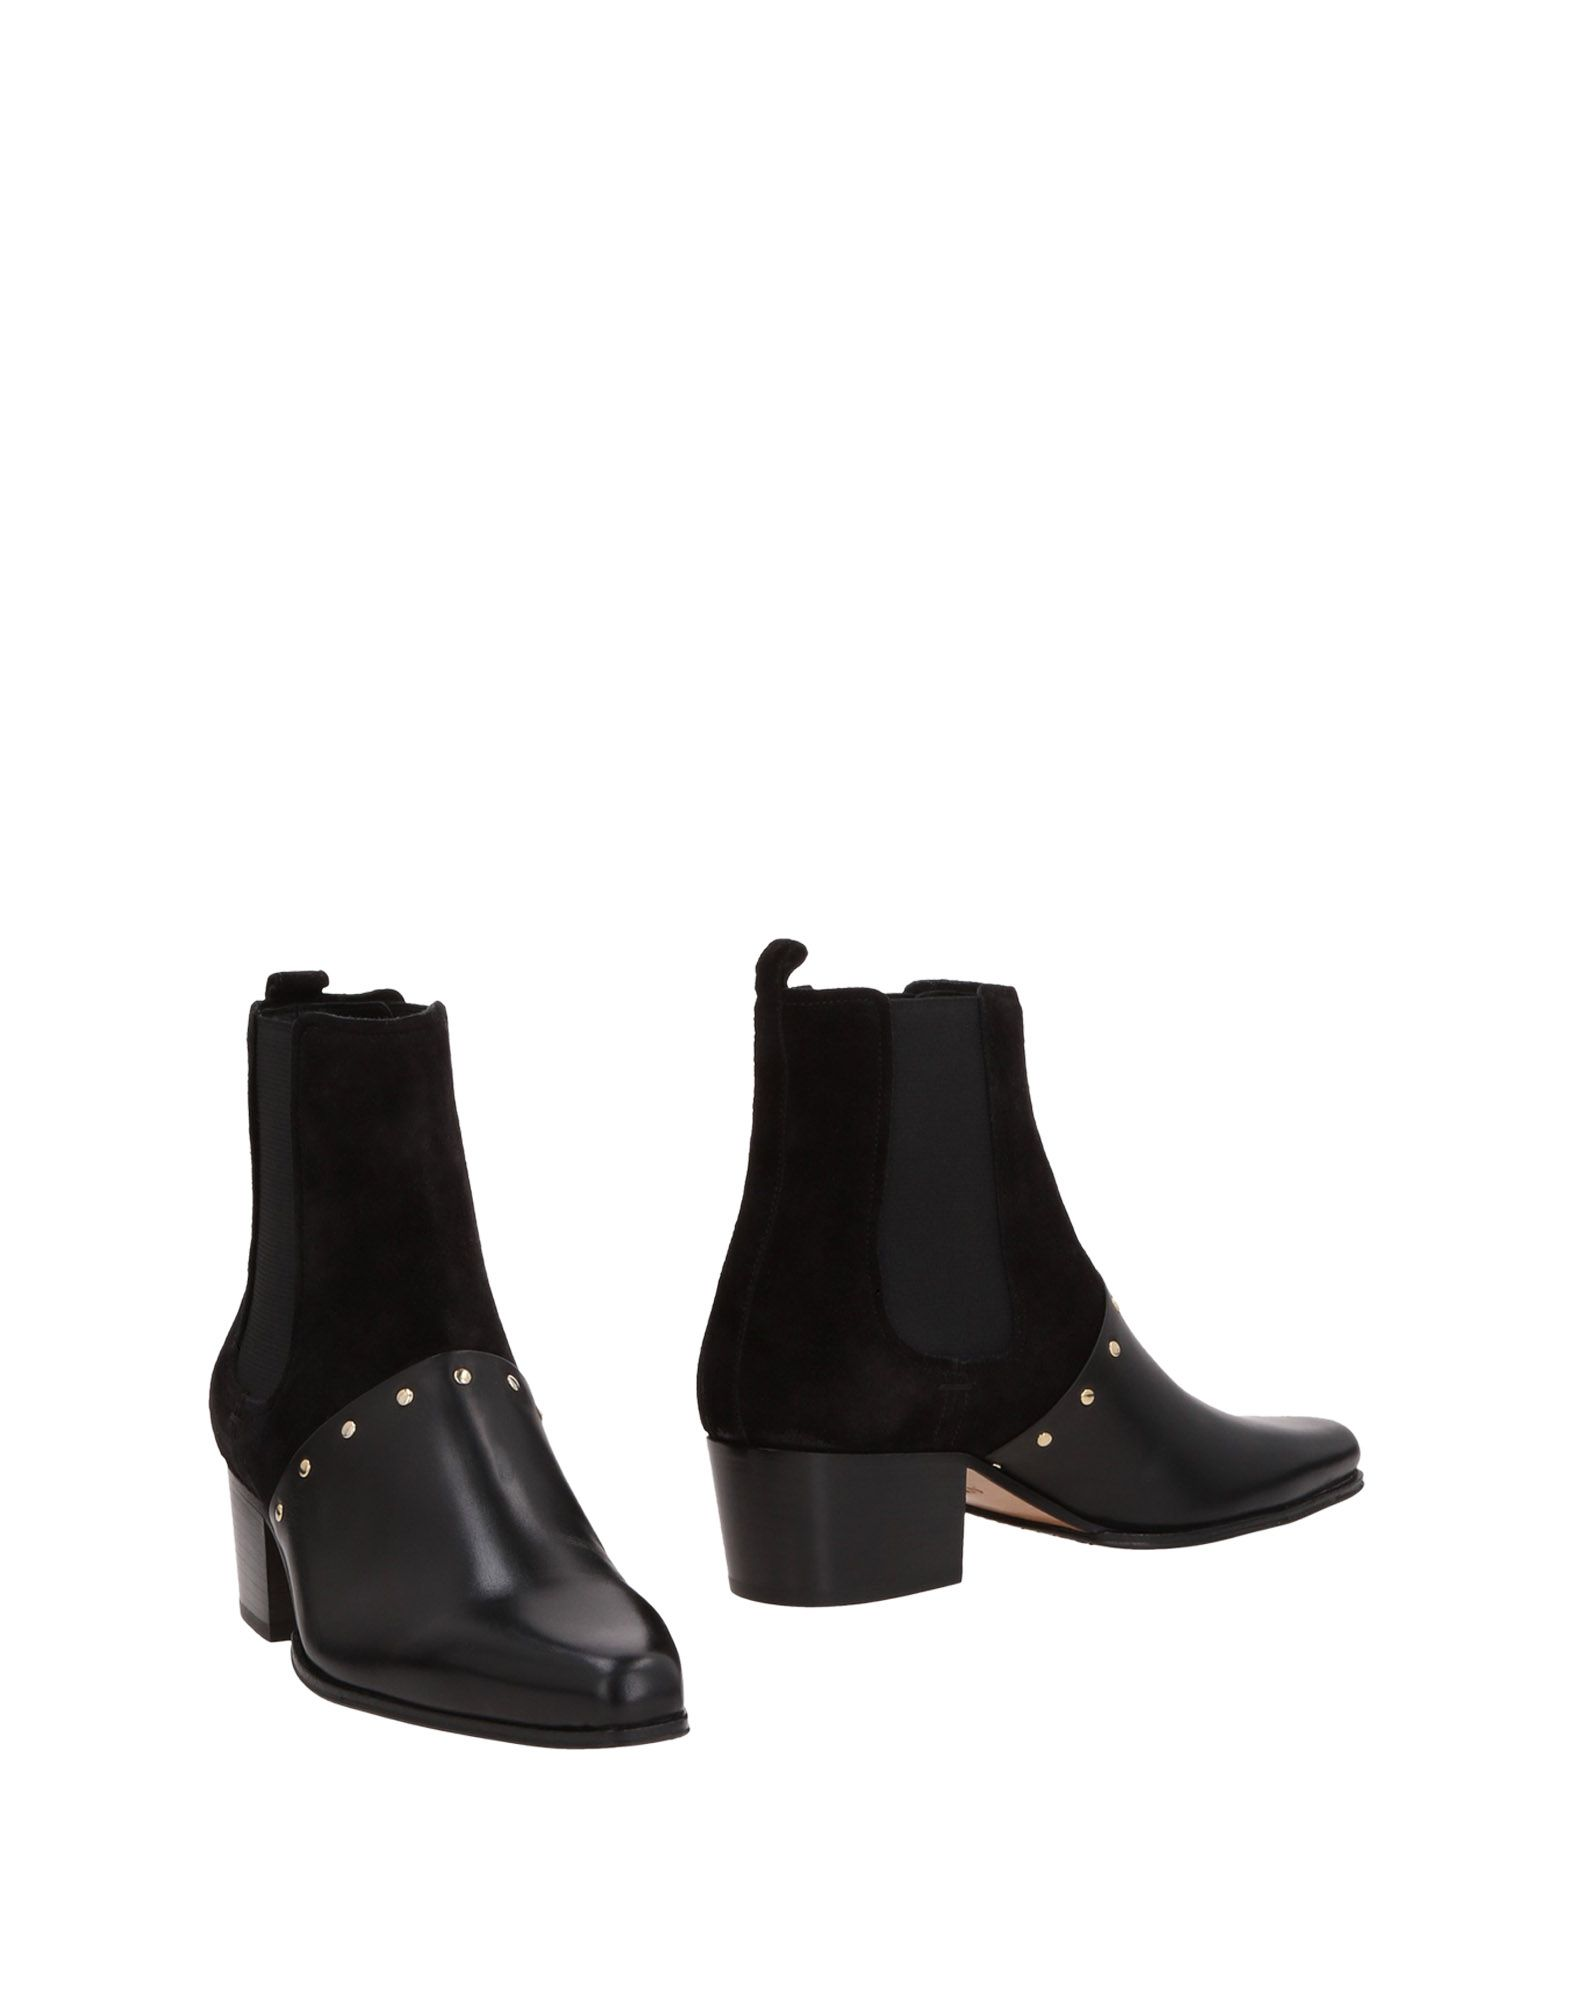 Balmain Balmain Balmain Ankle Boot - Women Balmain Ankle Boots online on  Canada - 11463542GF fd4858